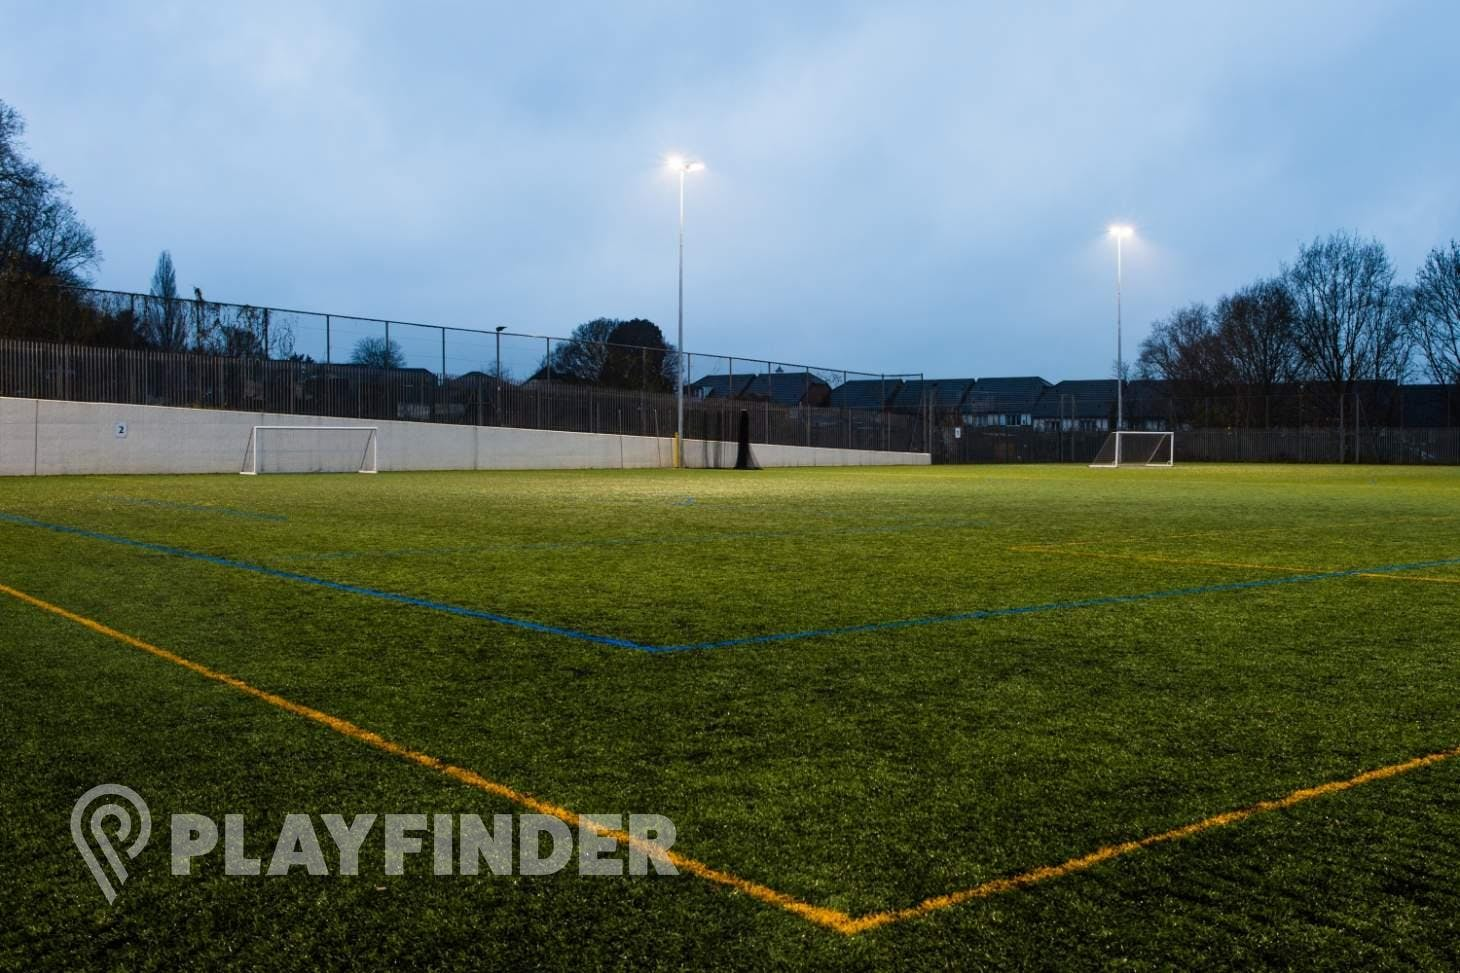 Middlesex University Sports Pitches 7 a side | 3G Astroturf football pitch